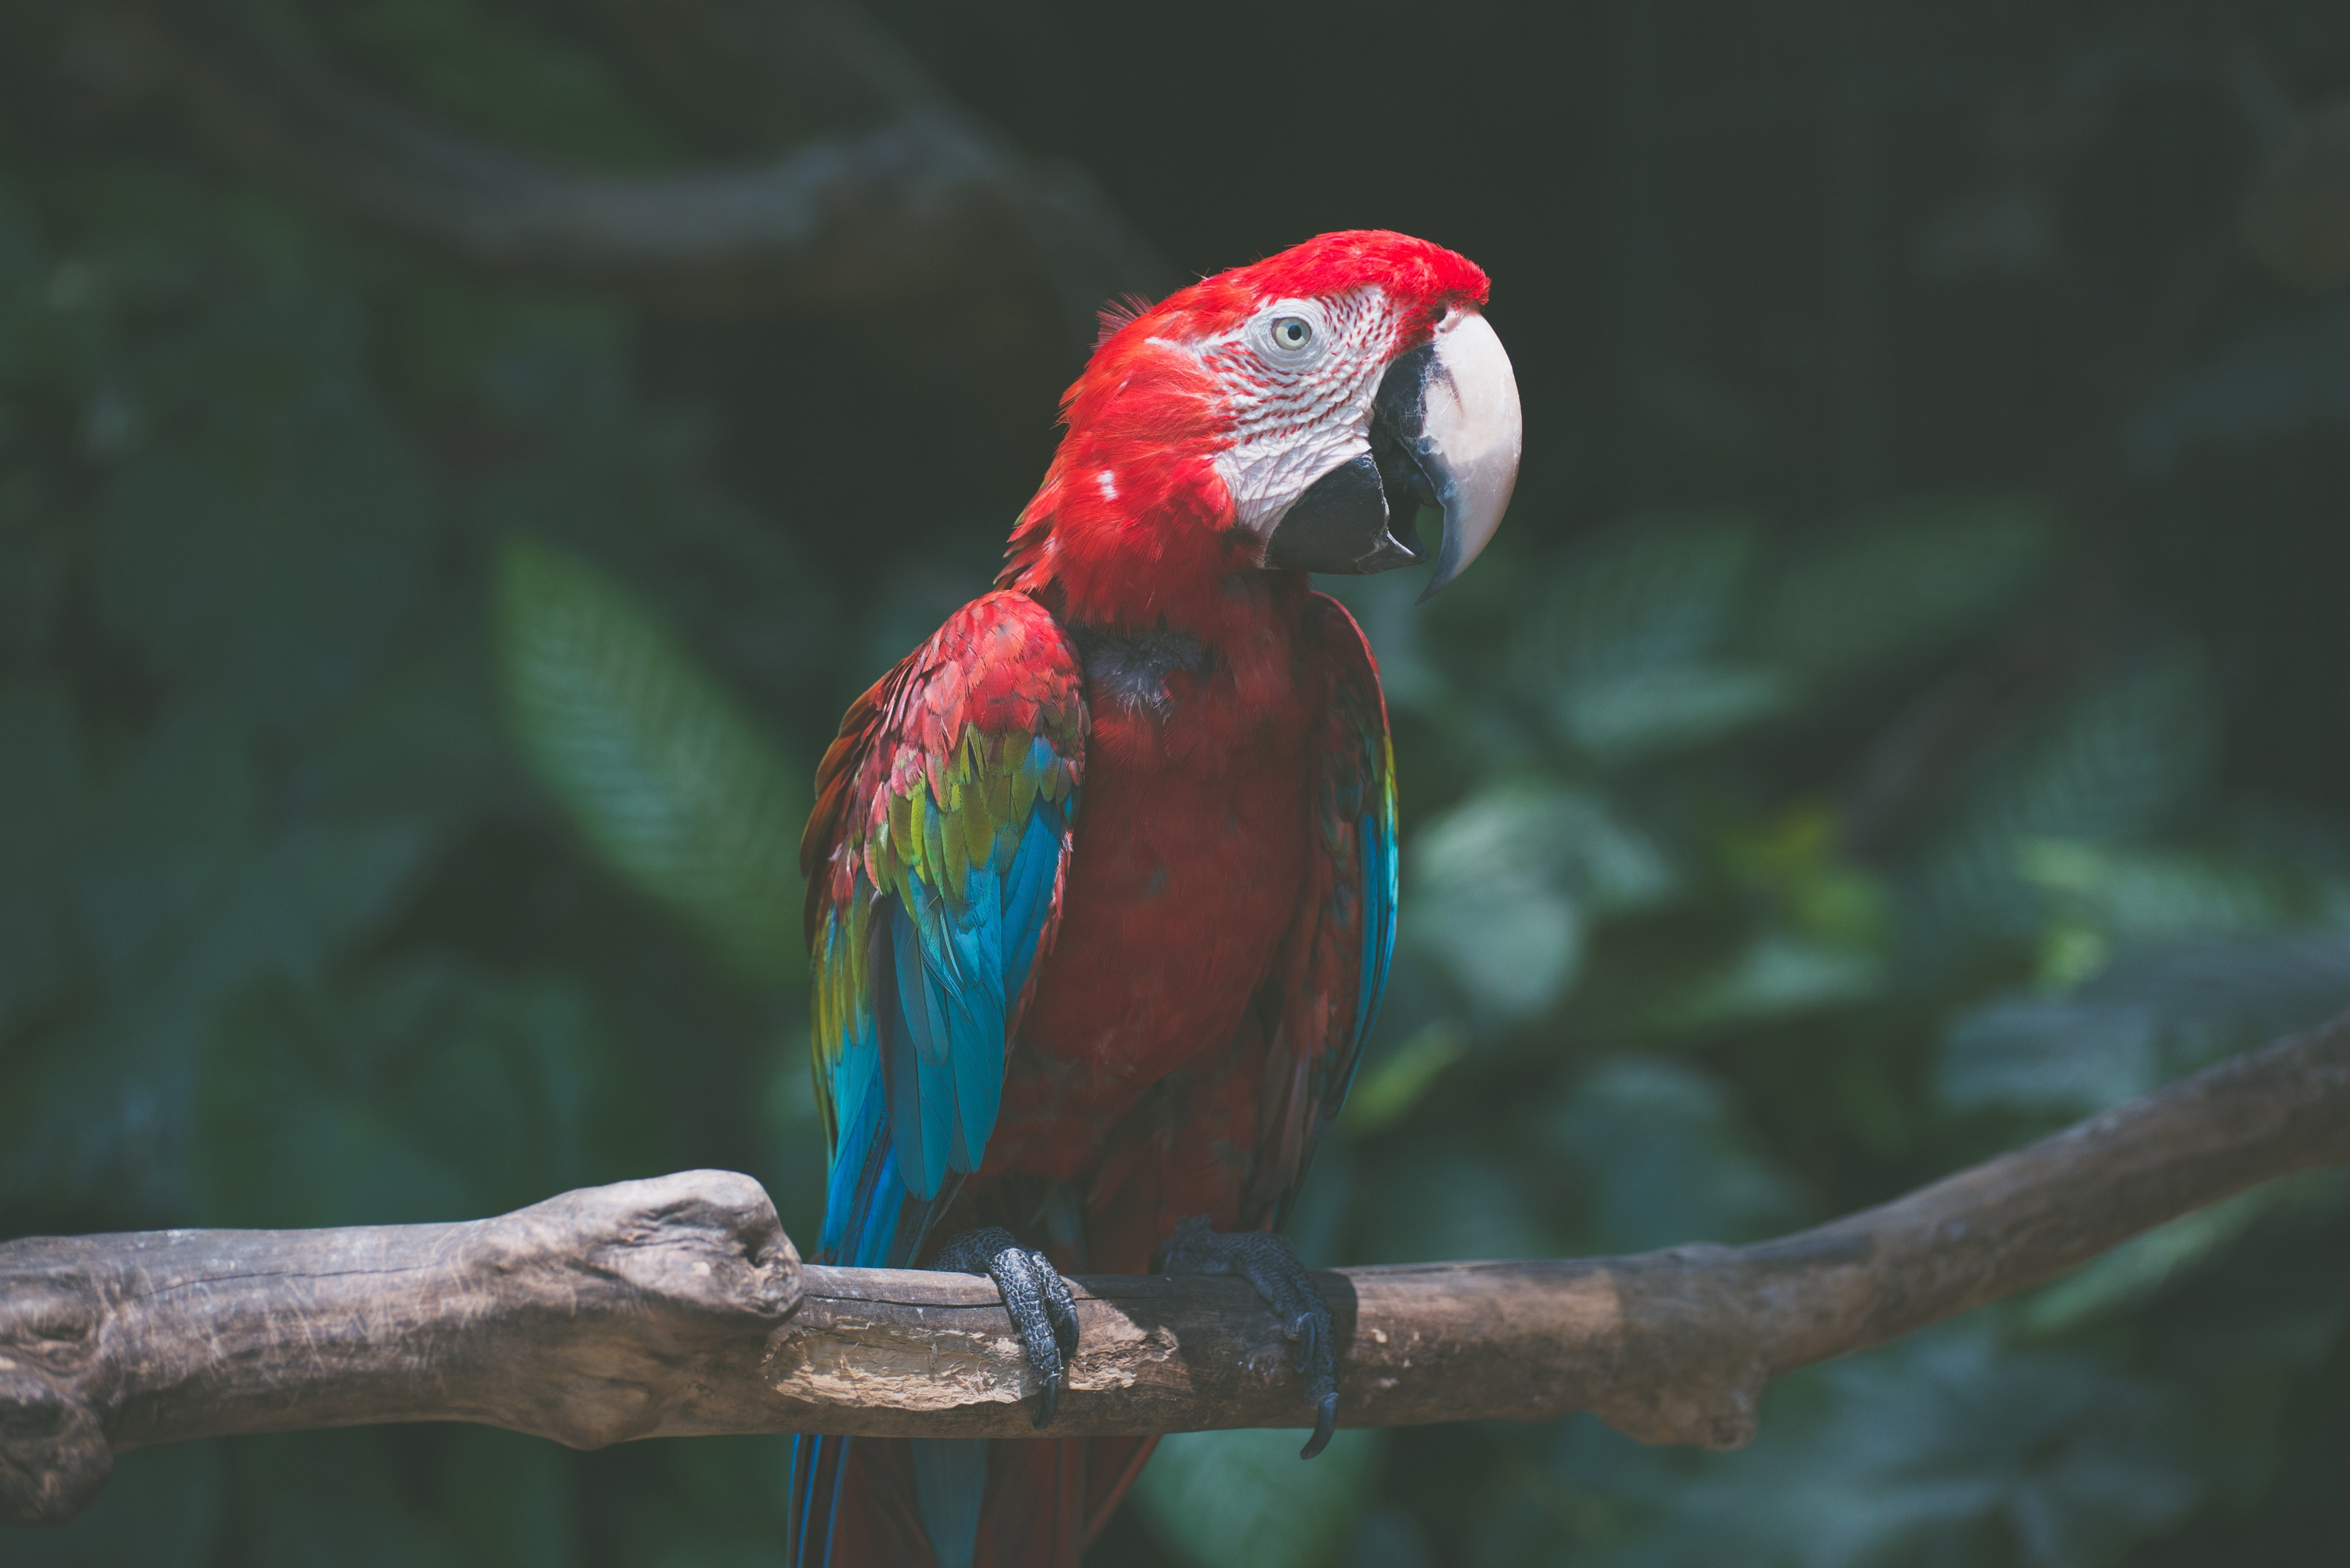 53771 download wallpaper Animals, Parrots, Macaw, Bird, Multicolored, Motley screensavers and pictures for free